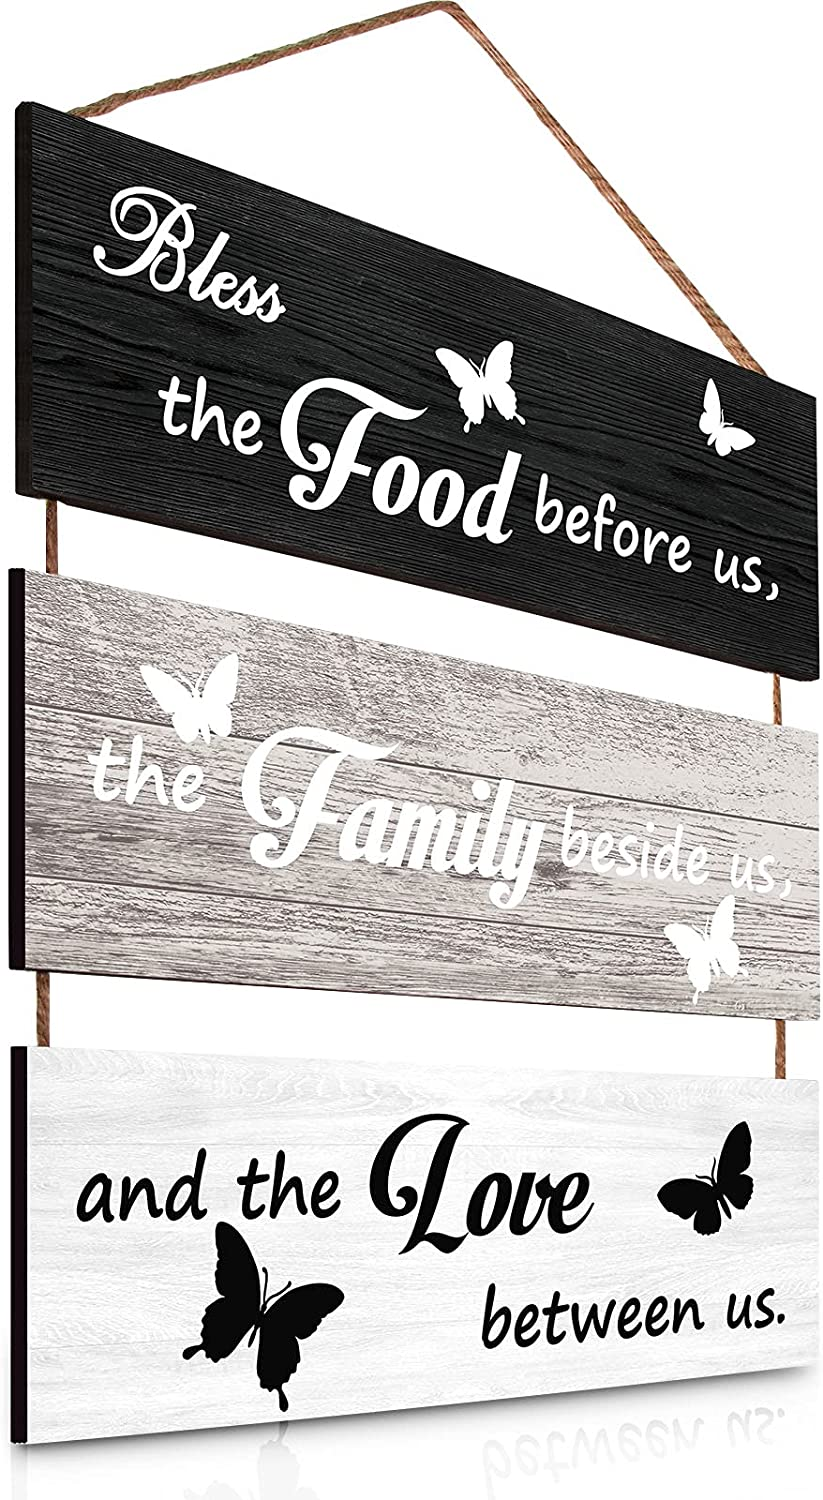 Jetec Bless Hanging Wall Sign Wood Rustic Bless Sign Wooden Bless Sign Hanging Wall Sign Hanging Wall Decoration Vintage Family Food Love Sign Kitchen Sign for Dining Room, Bedroom Home Decorations